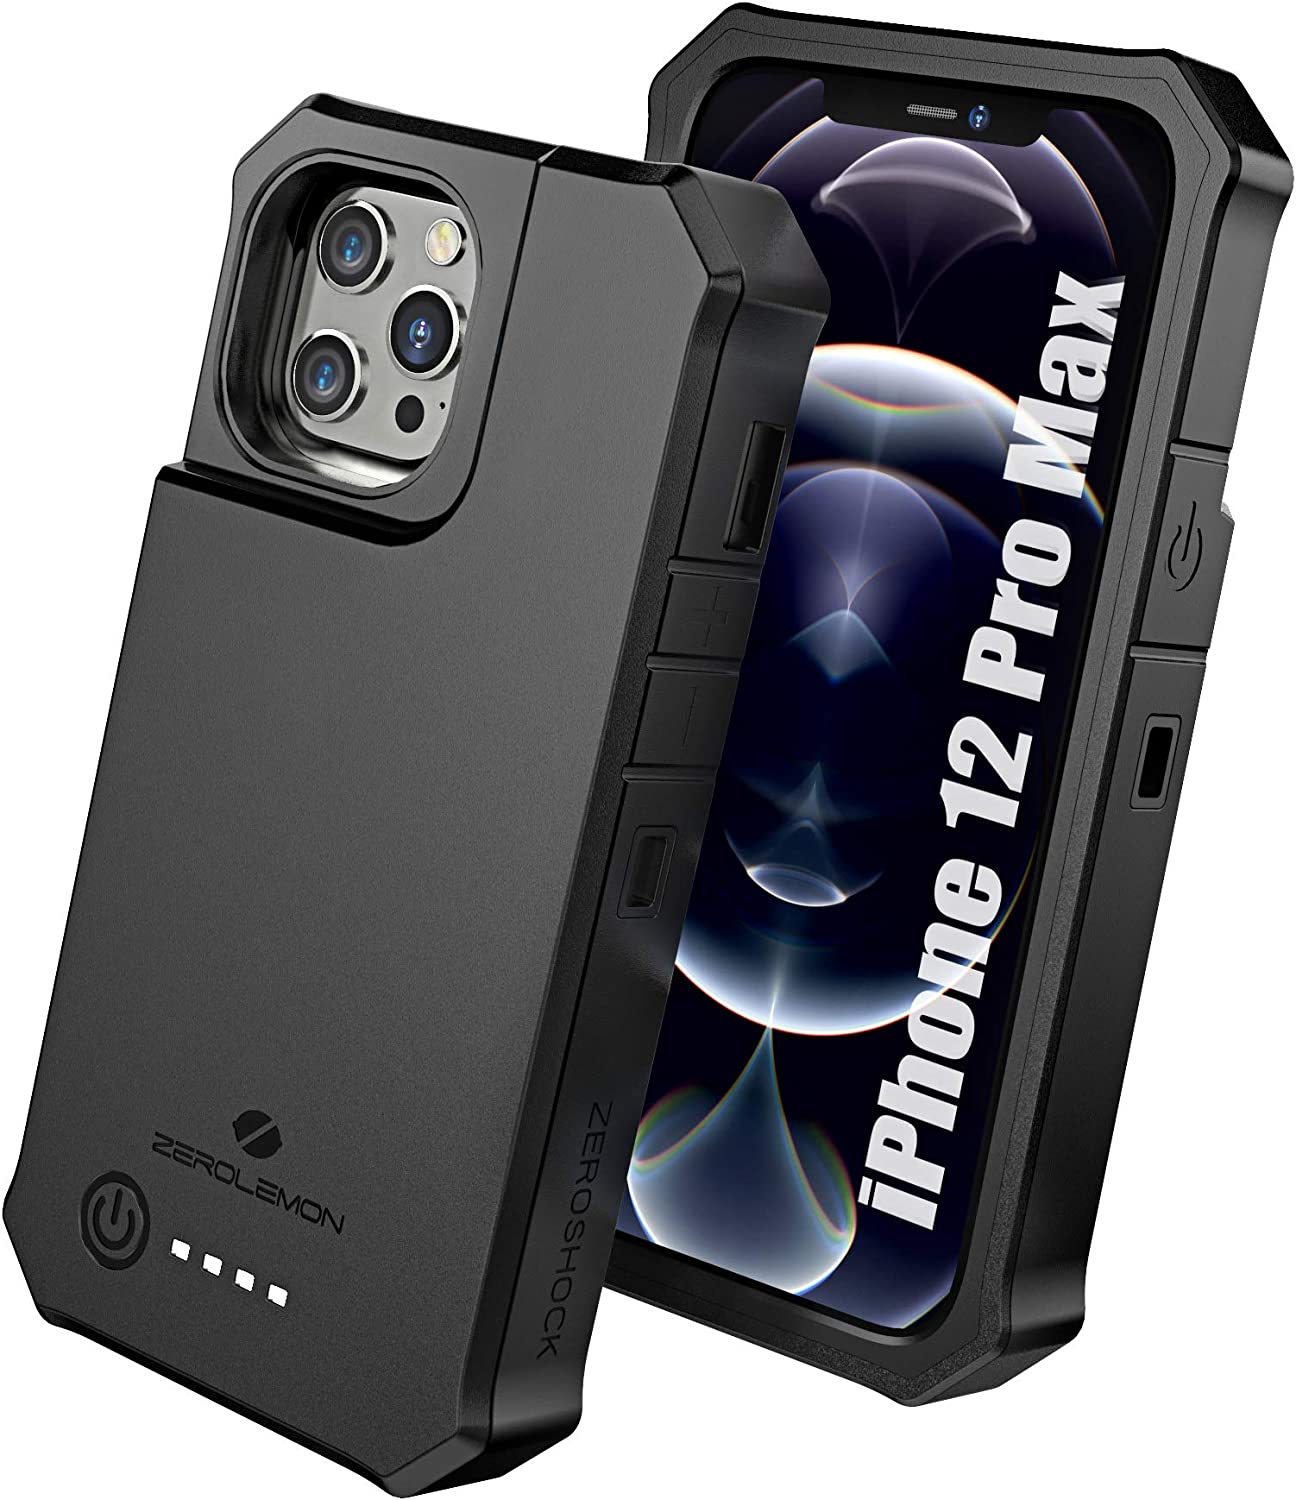 """ZEROLEMON iPhone 12 Pro Max Battery Case 10000mAh, Wireless Charging & Lightning Headphone Supported, RuggedJuicer Extended Battery Charger Case for iPhone 12 Pro Max 6.7"""" 2020 - Black"""